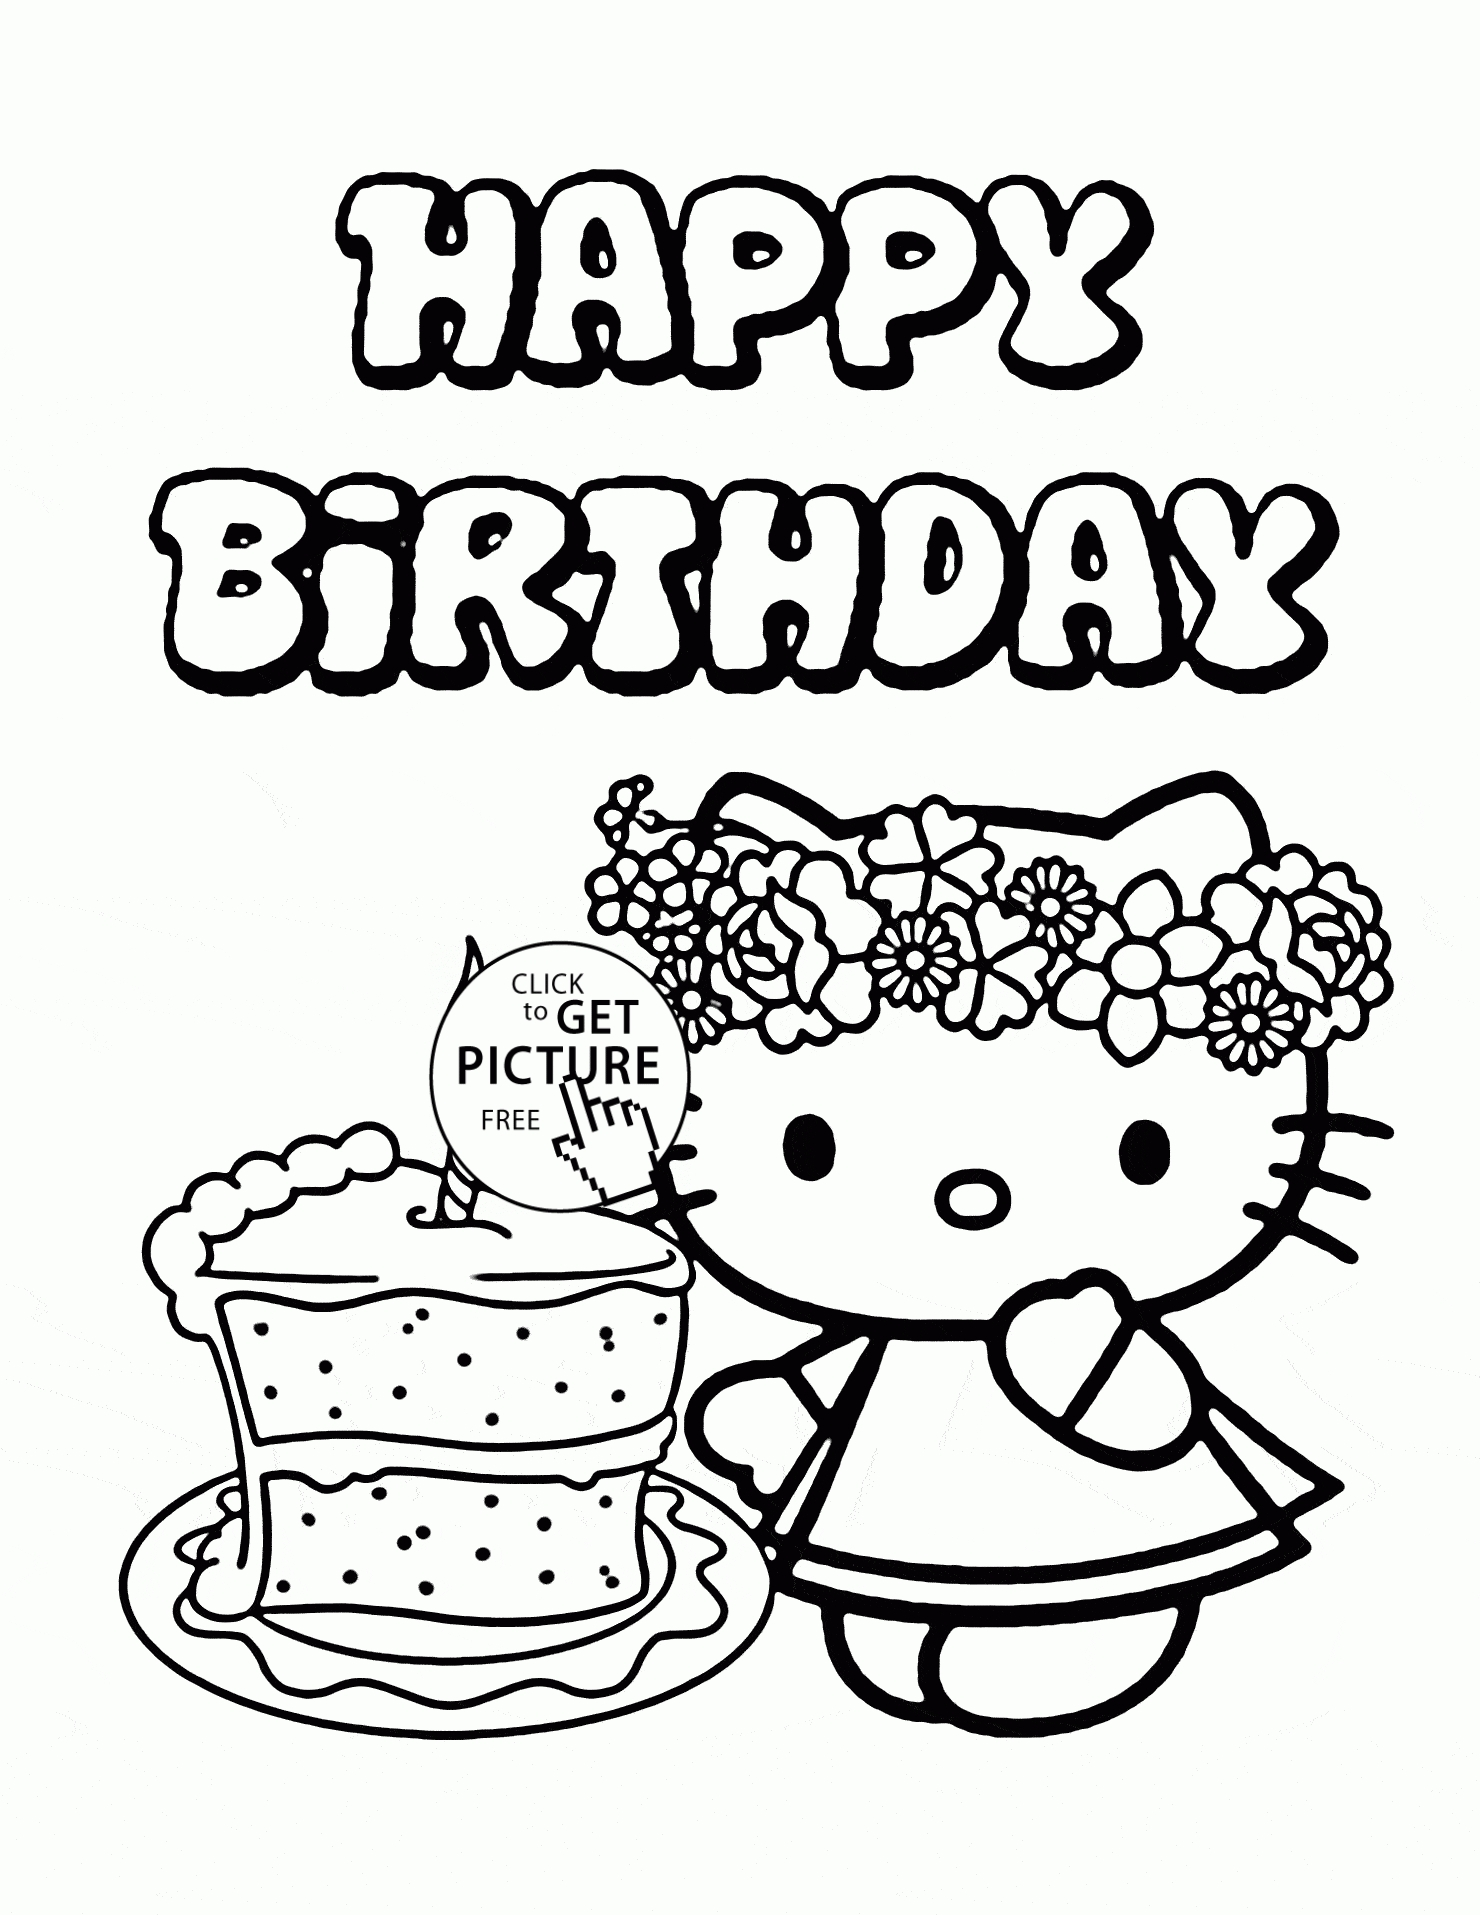 printable birthday coloring pages - birthday cake coloring page printable